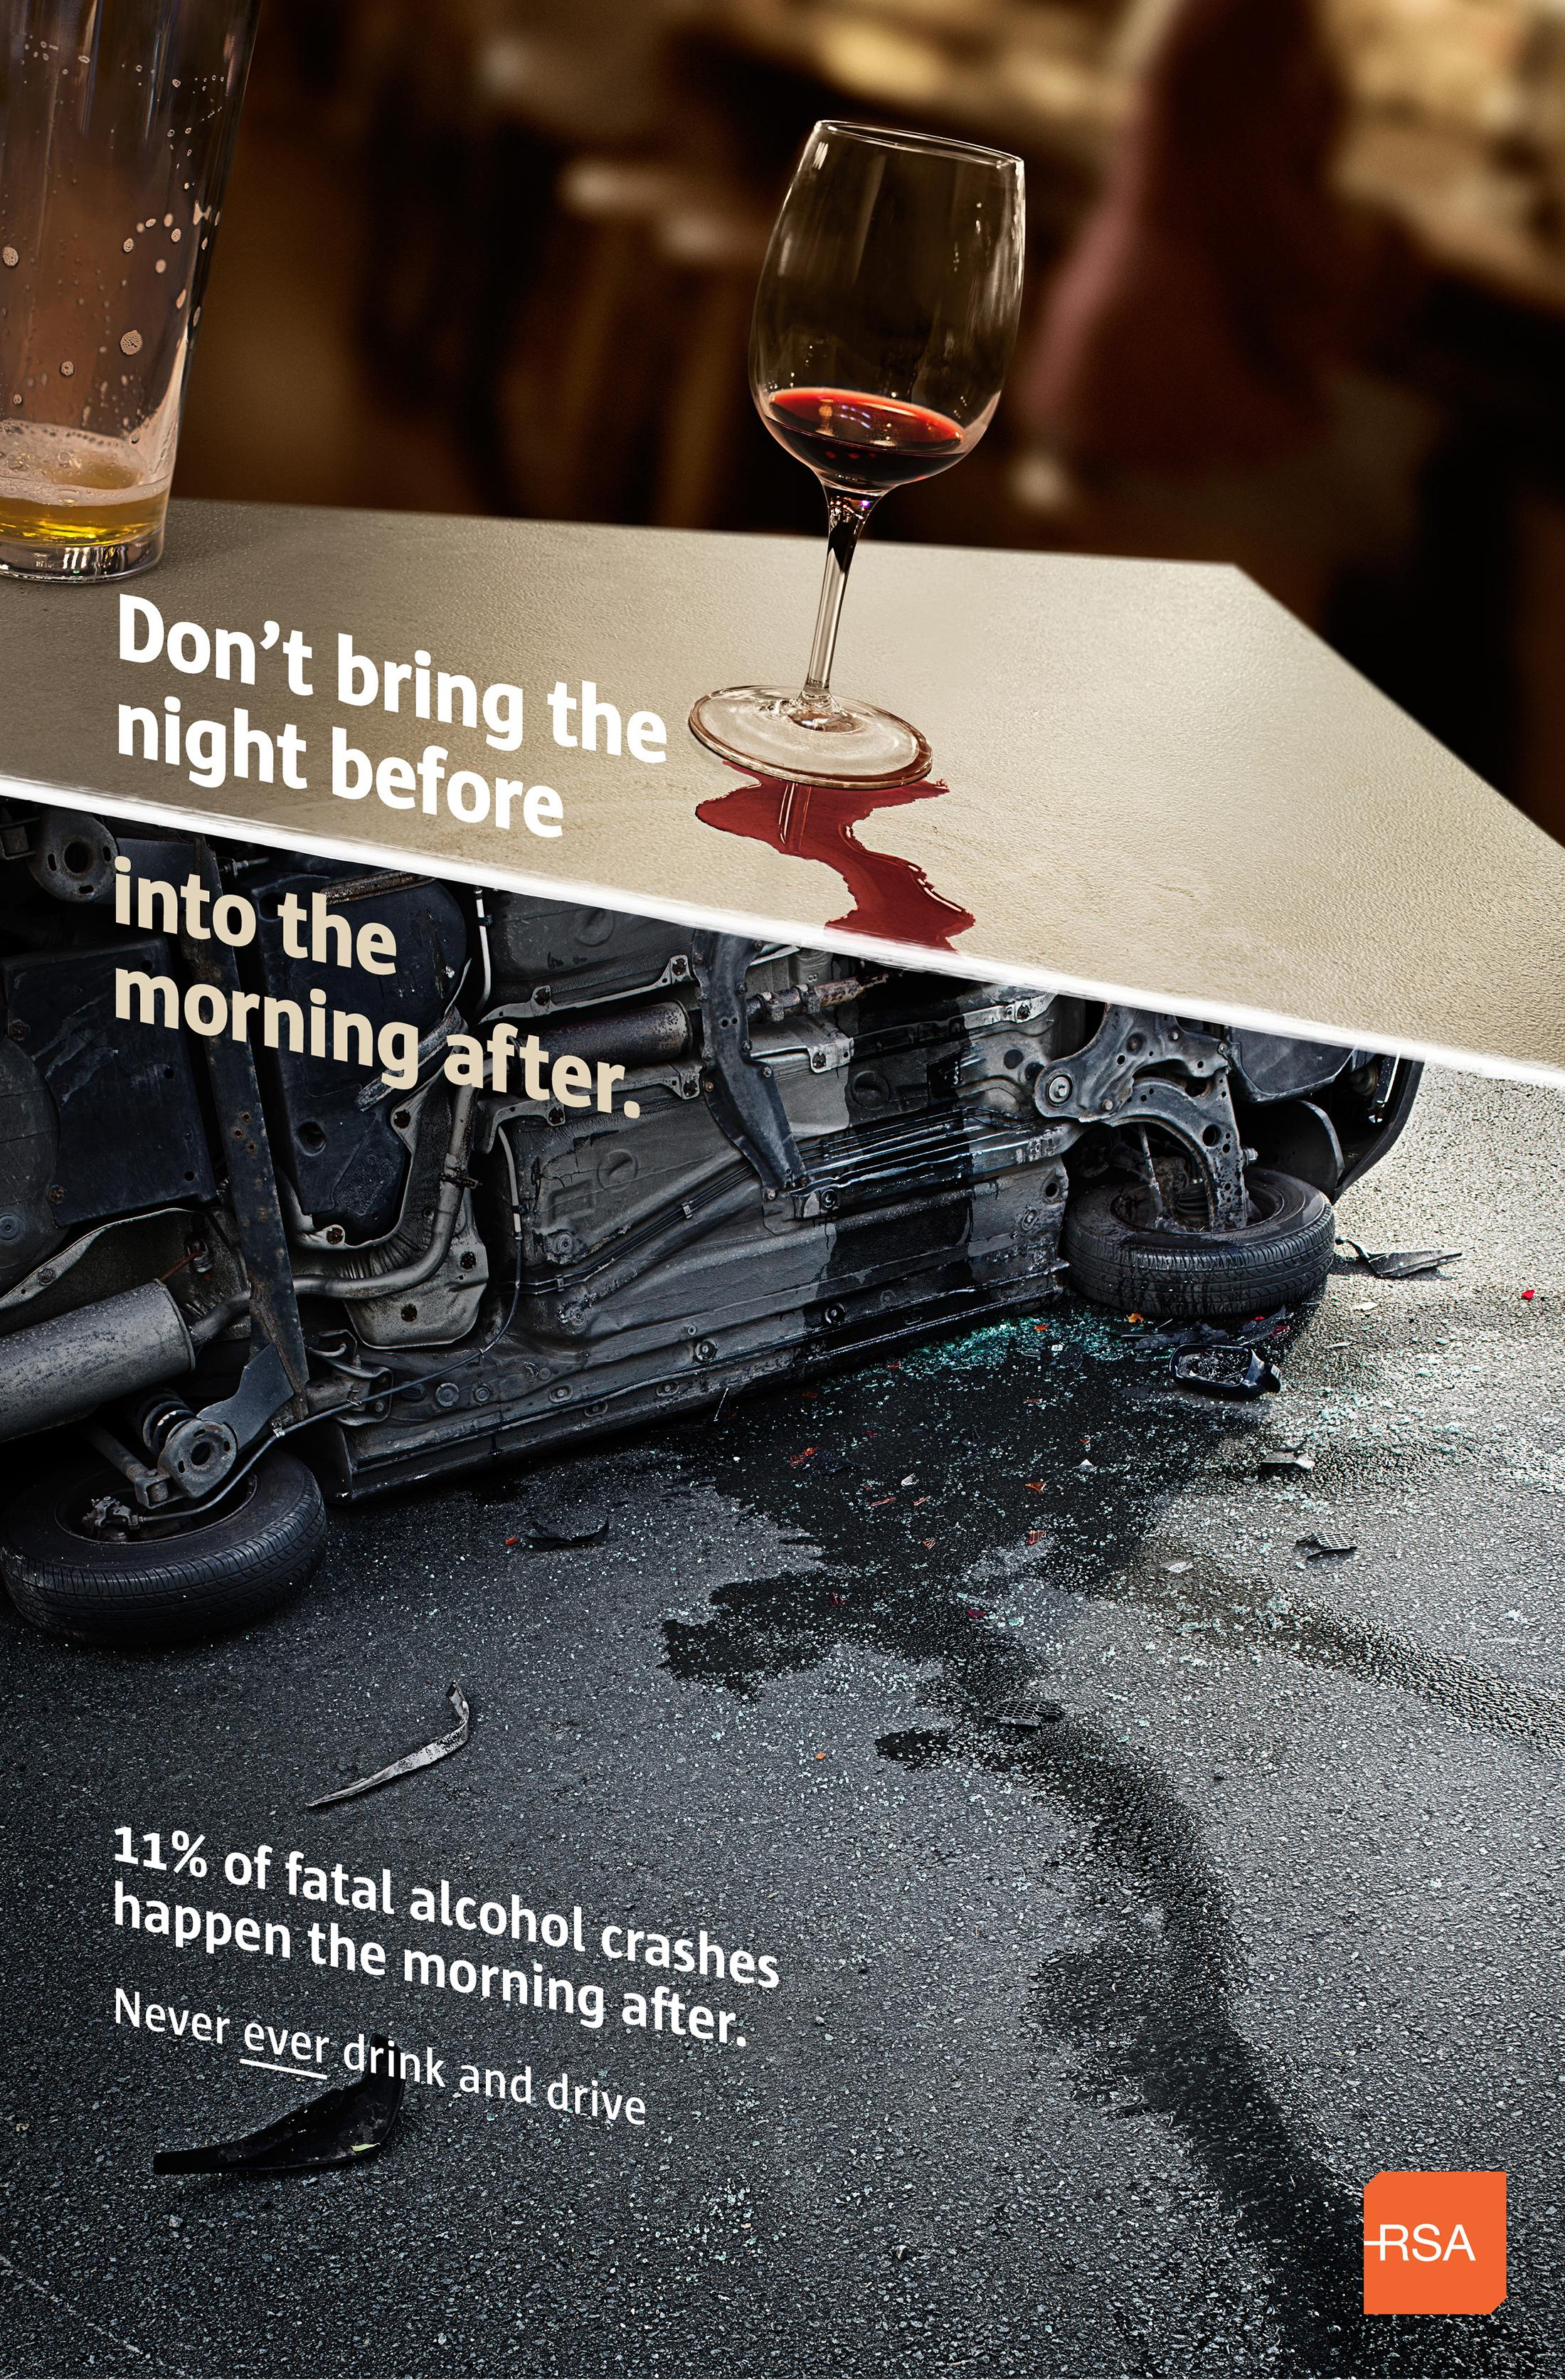 Road Safety Authority Ireland Print Ad - Morning After